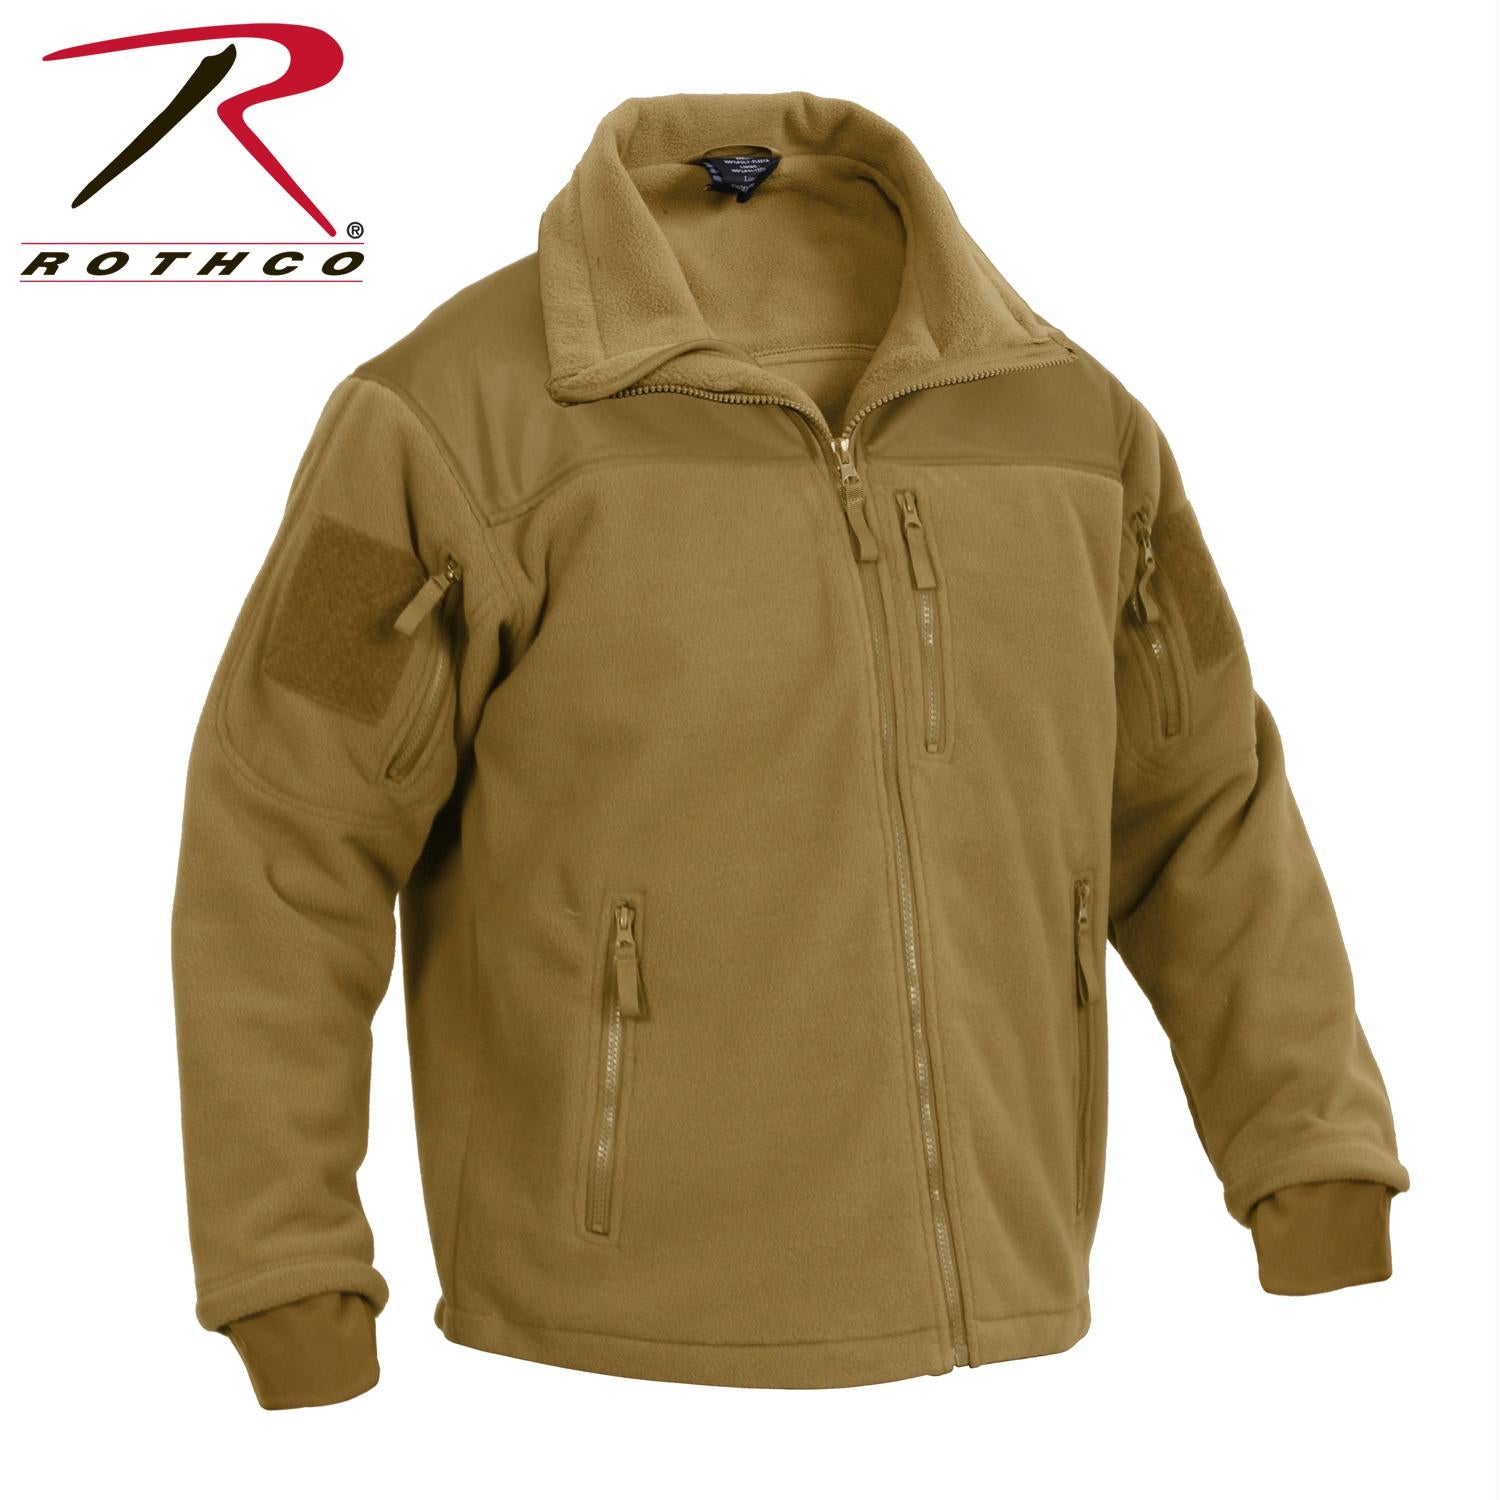 Rothco Spec Ops Tactical Fleece Jacket - Coyote Brown / S